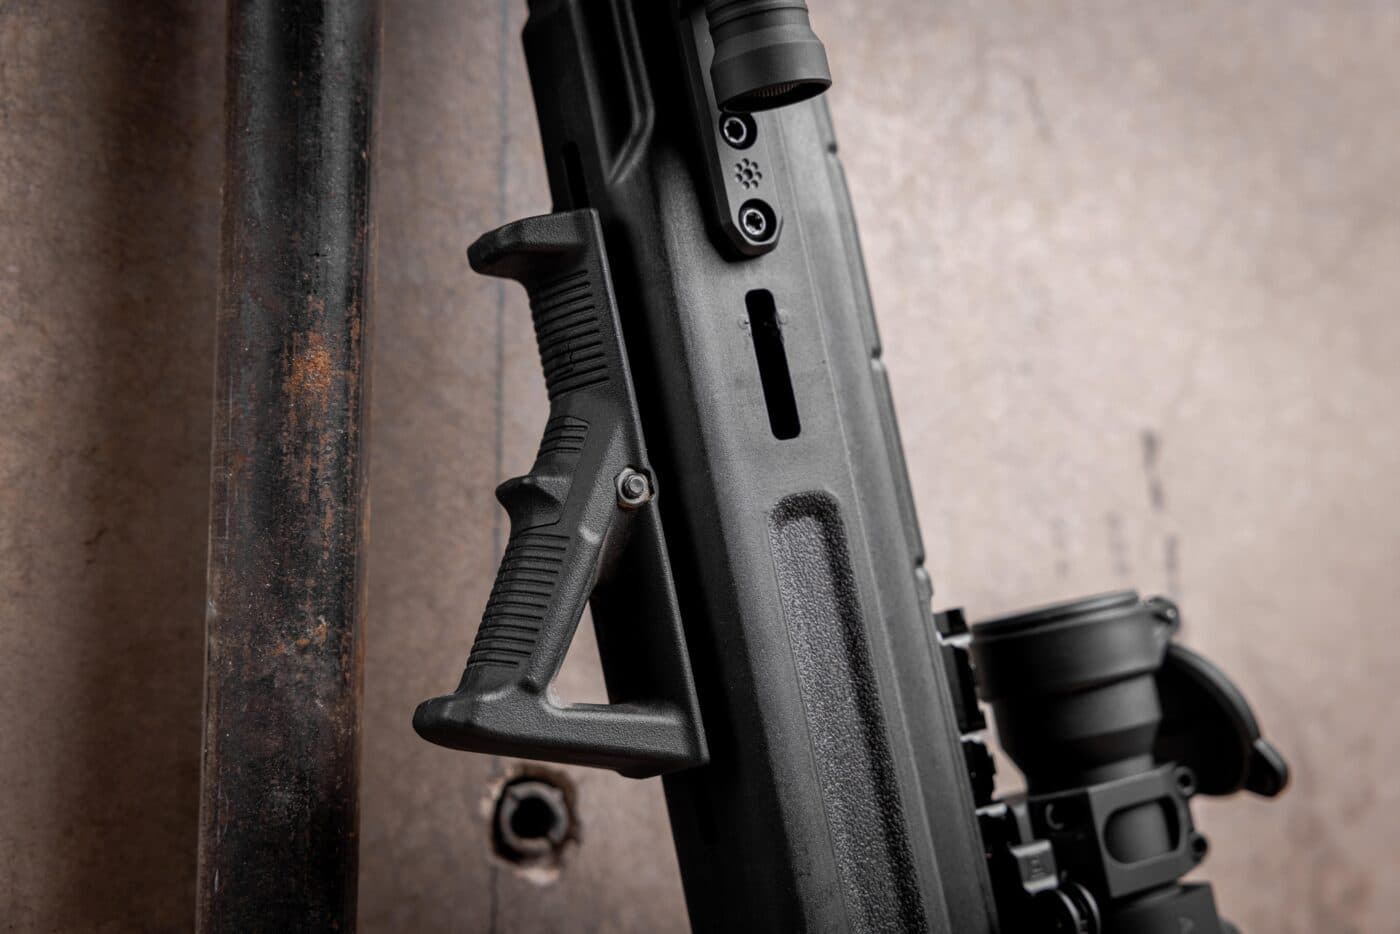 Magpul AFG-2 angled foregrip on an M1A rifle